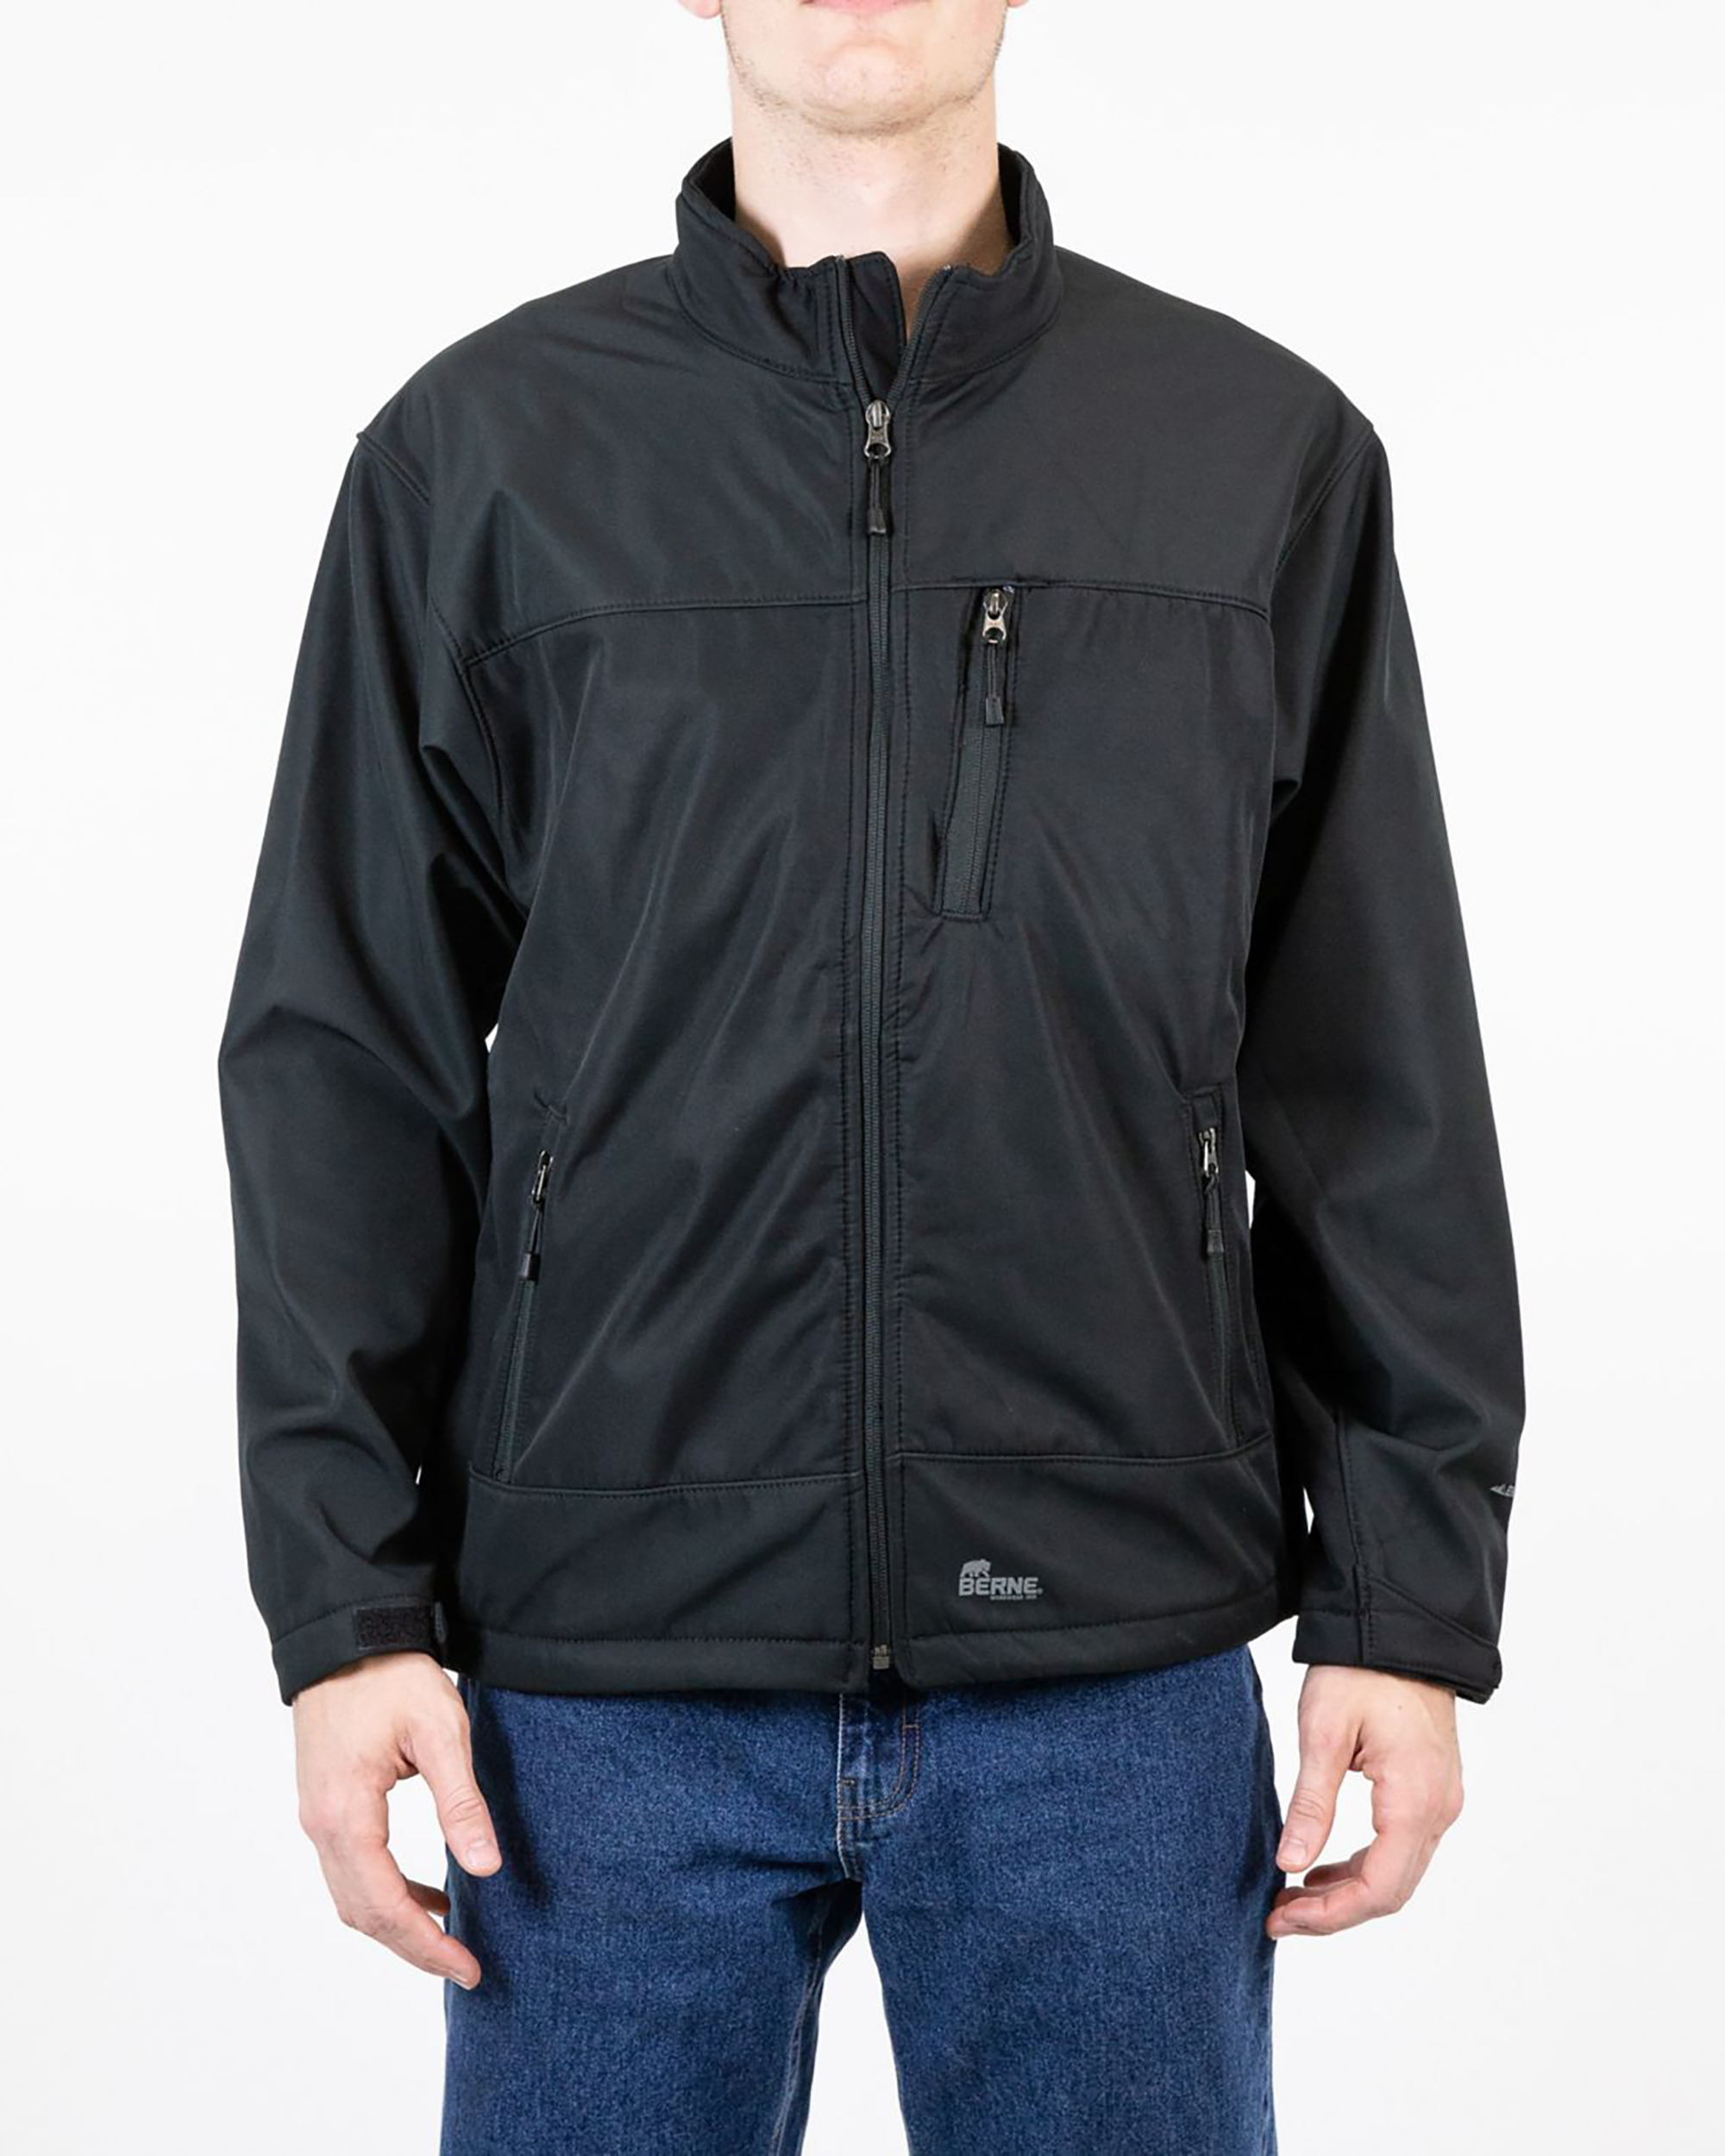 Berne Workwear JS200 - Eiger Softshell Jacket